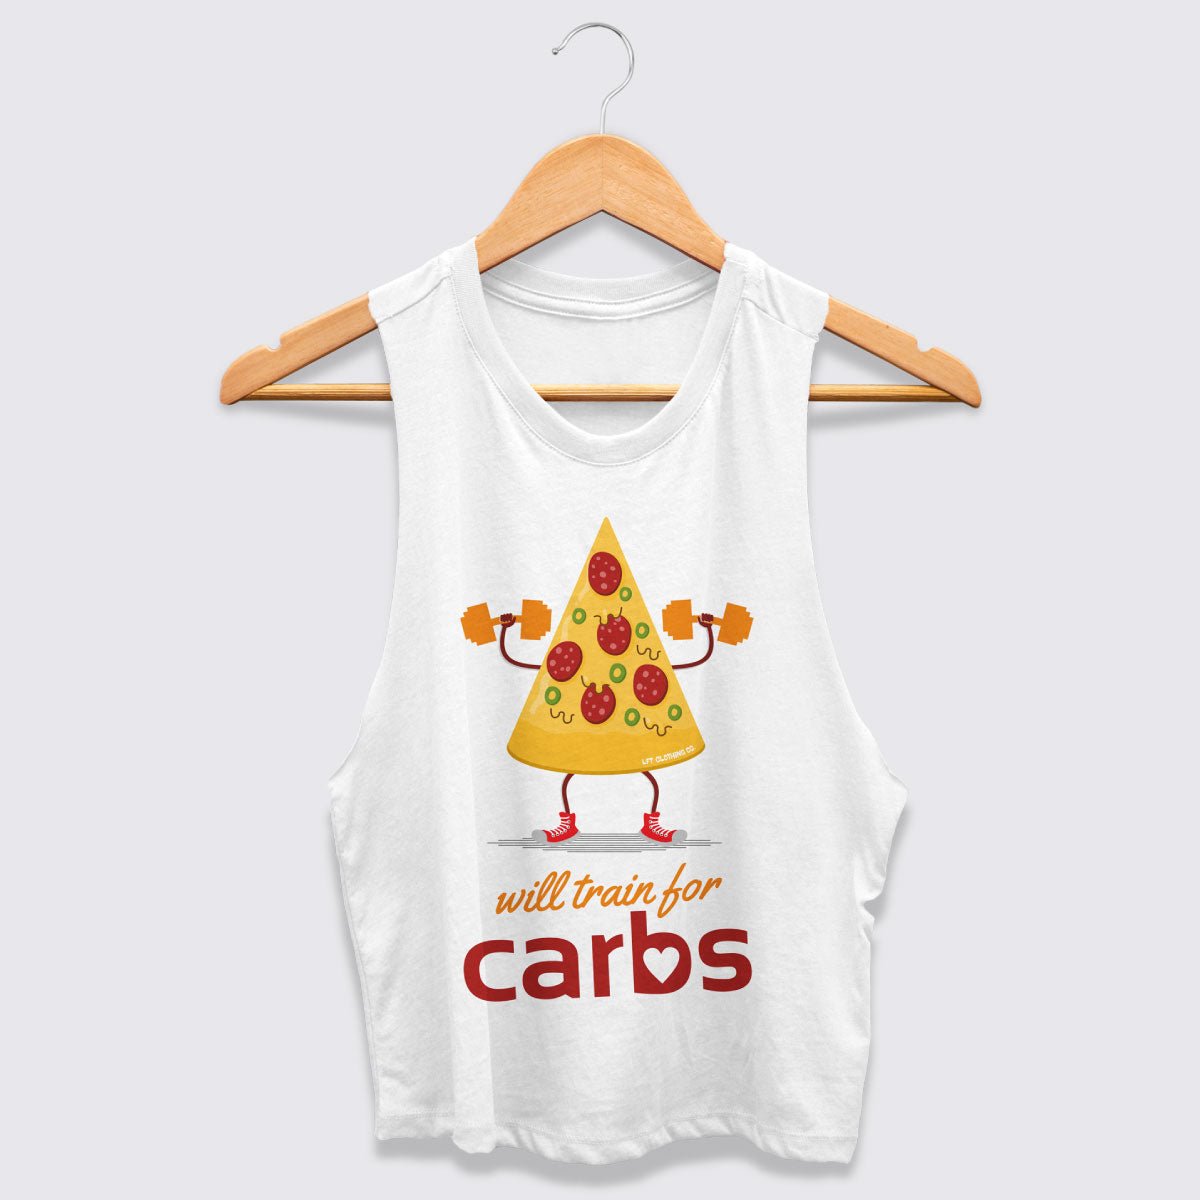 Will Train for Carbs Women's Racerback Crop Tank